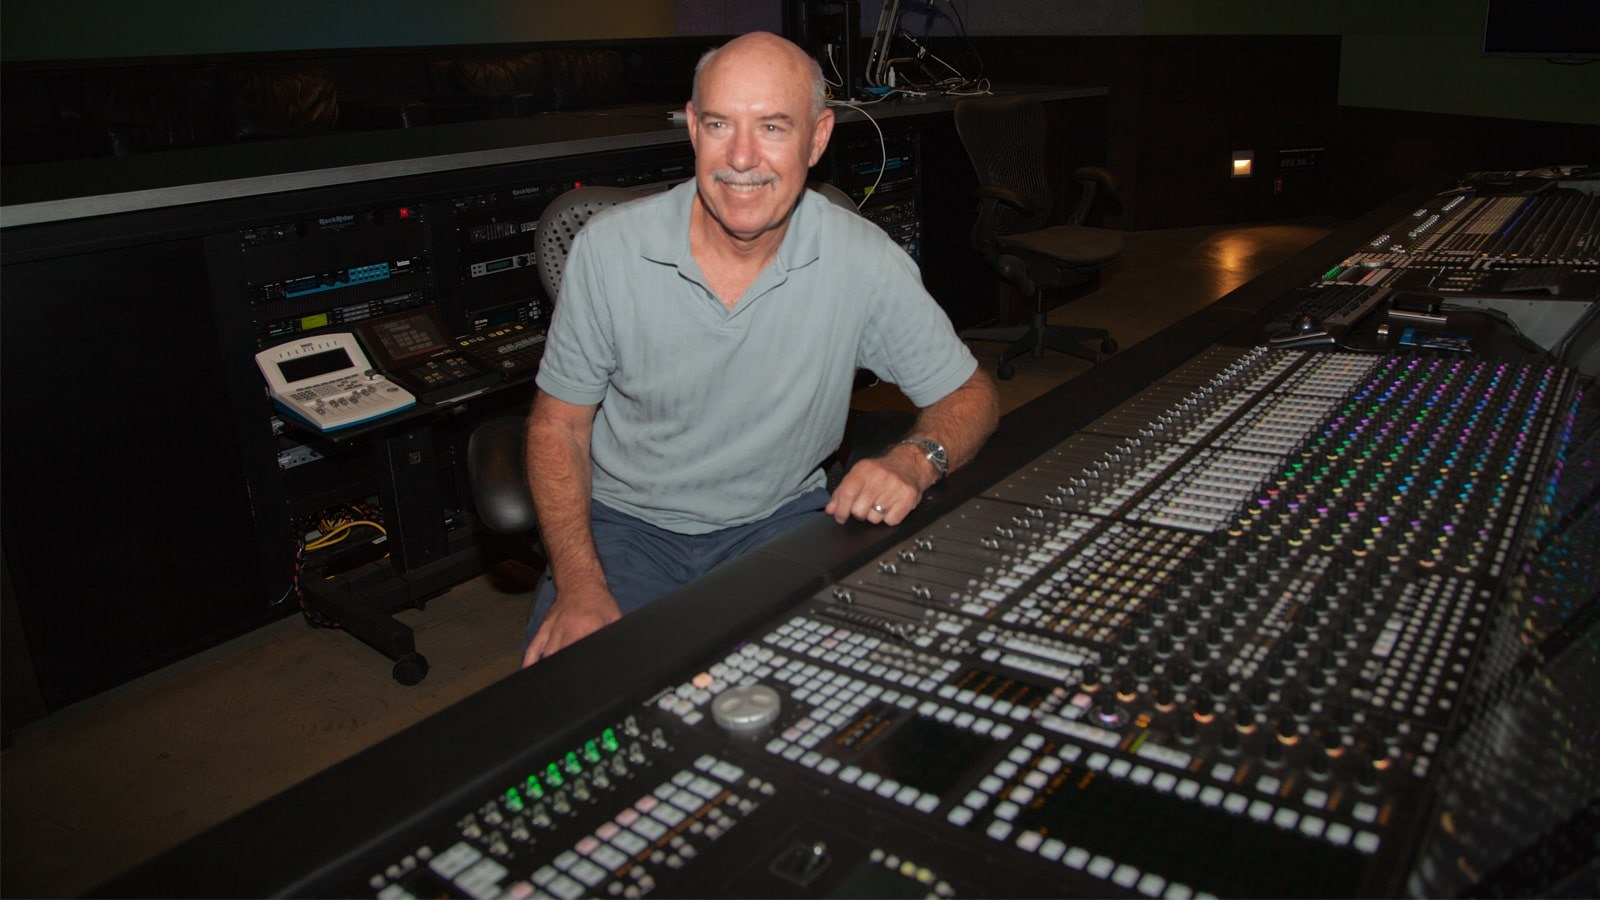 Academy Award Winning Sound Engineer Bill Benton Joins Film Production MFA Faculty - Hero image